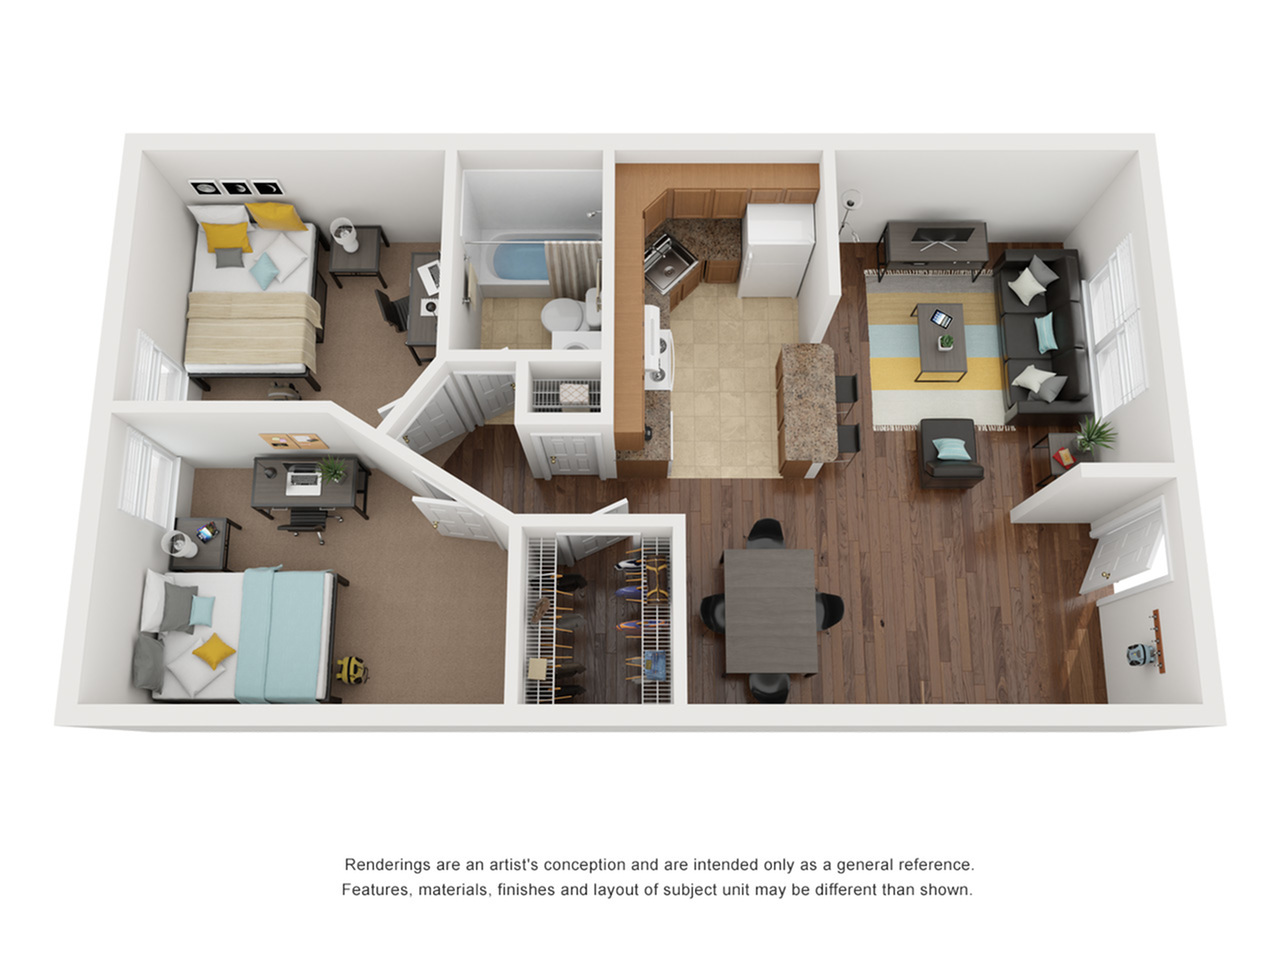 Floor Plans | The Social Grand Forest Apartment Homes for Rent in Knoxville TN 37916